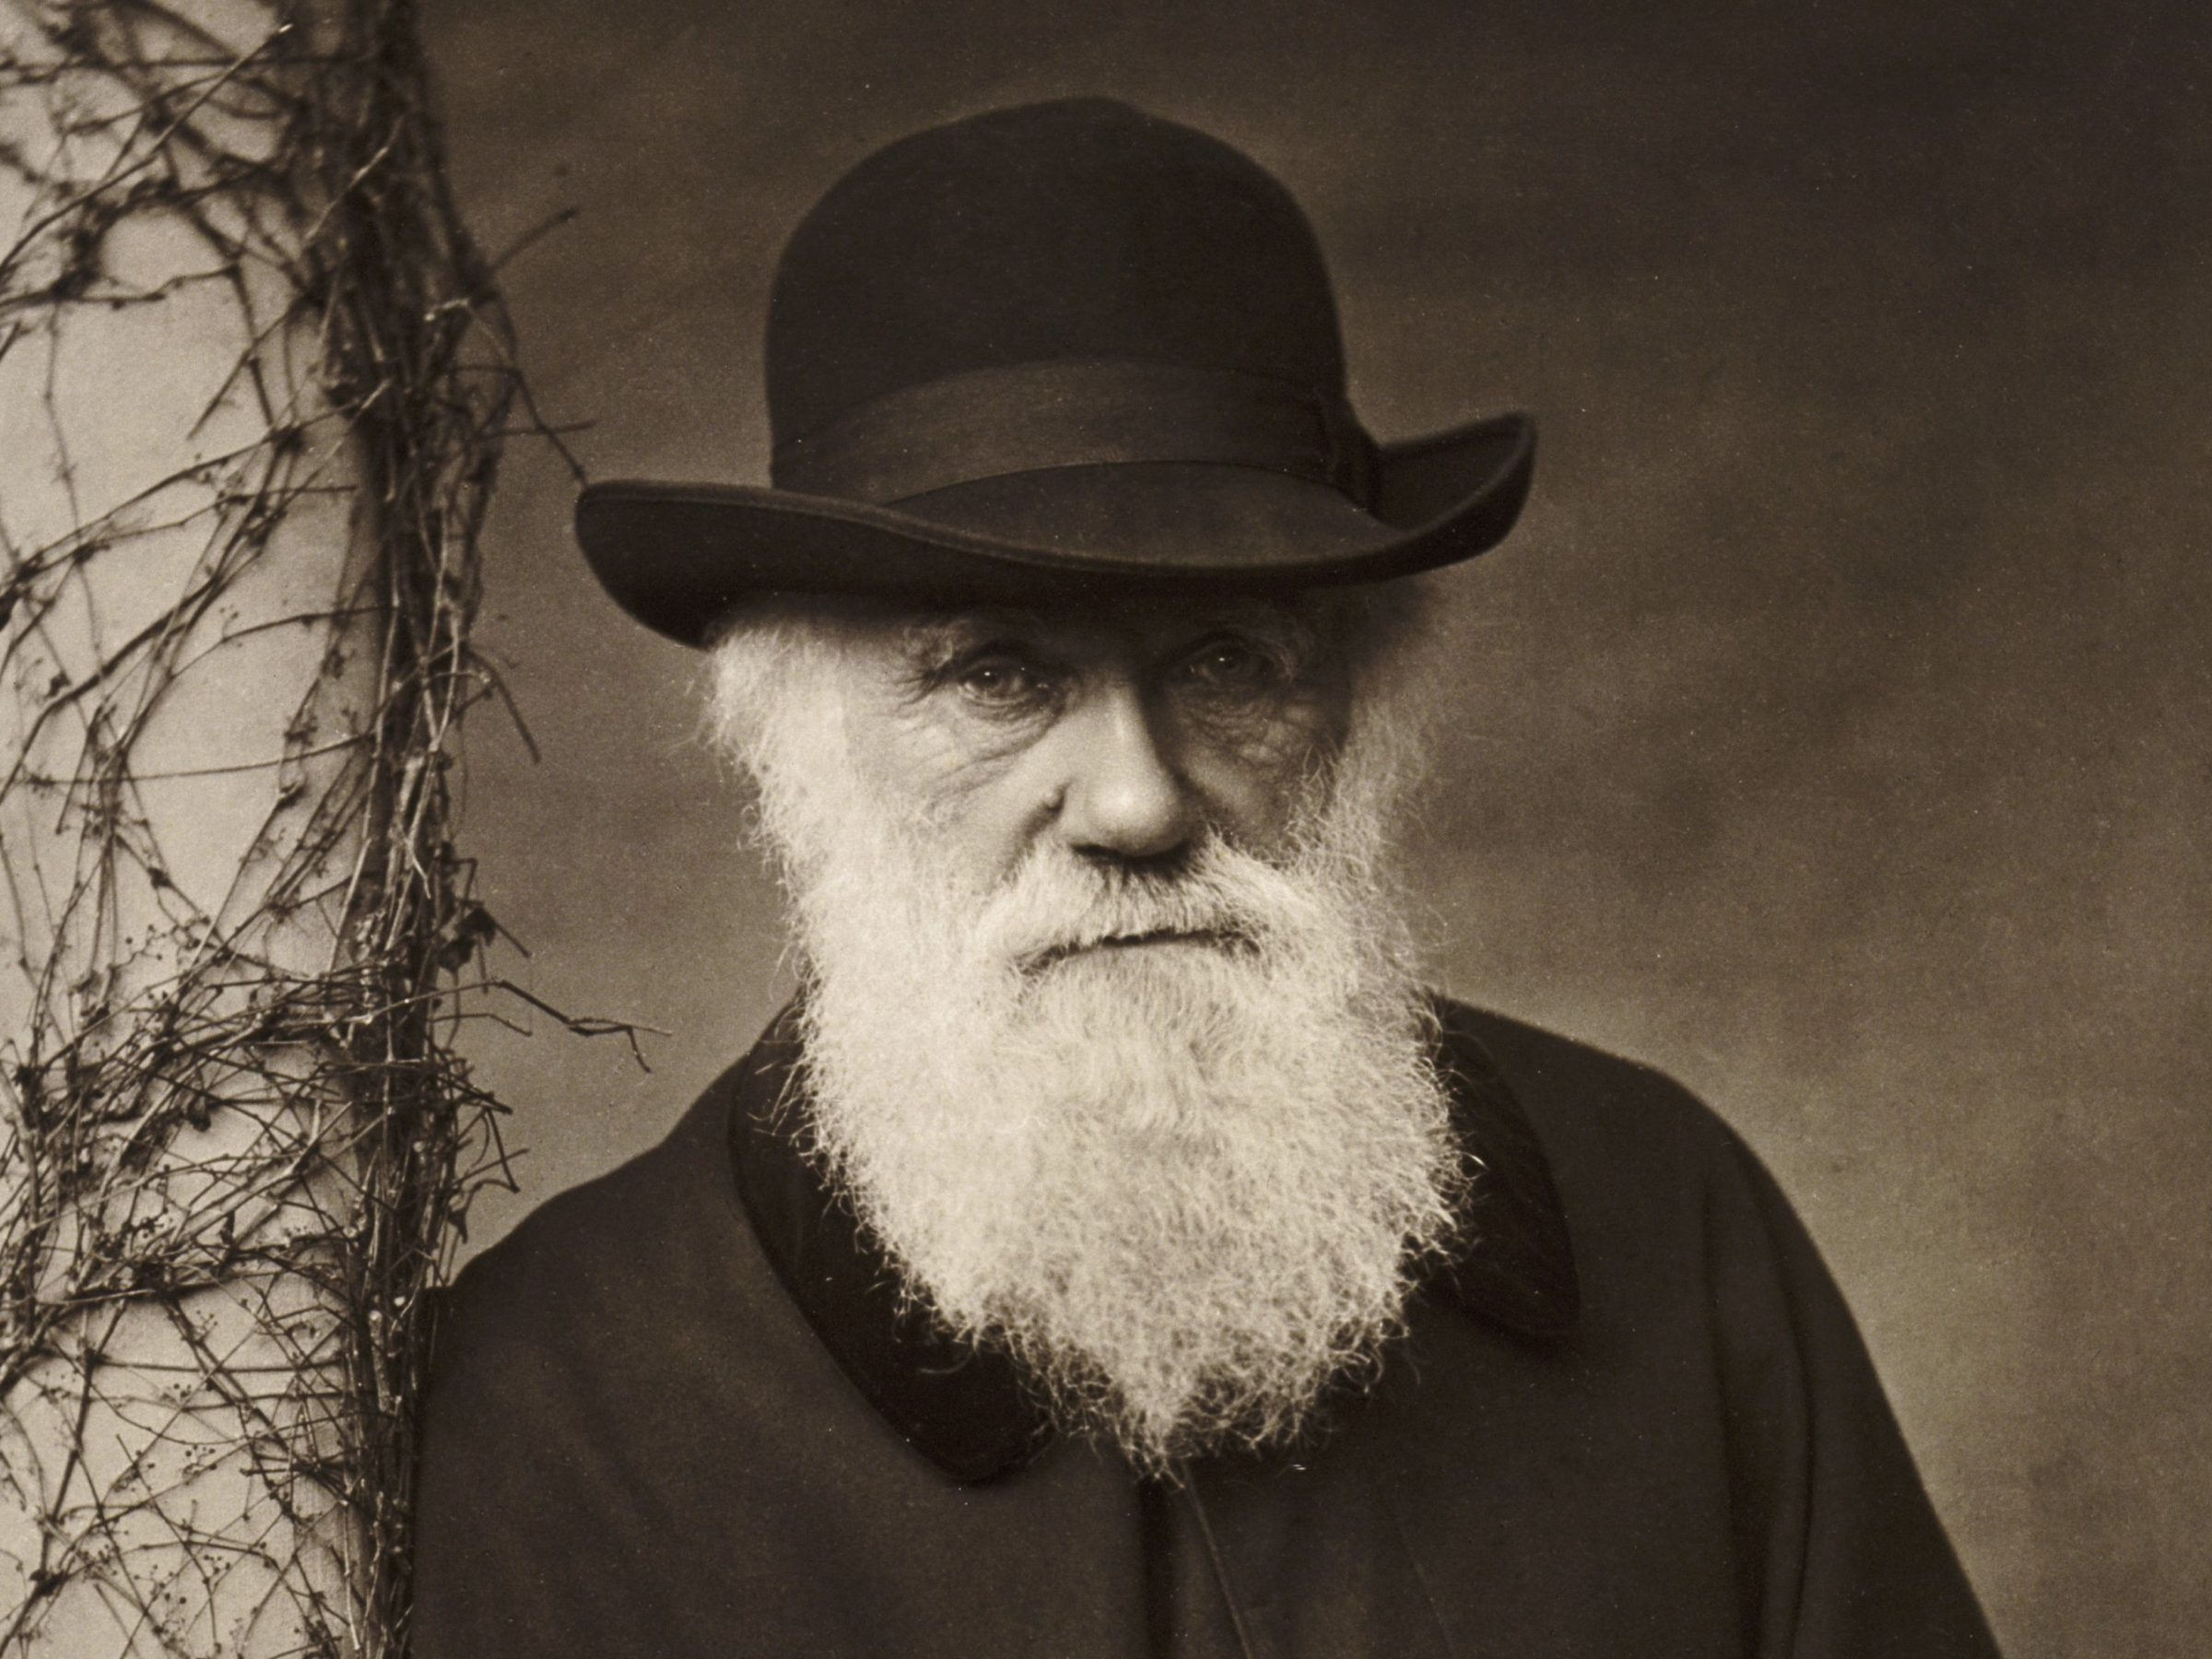 Older Charles Darwin wearing a hat